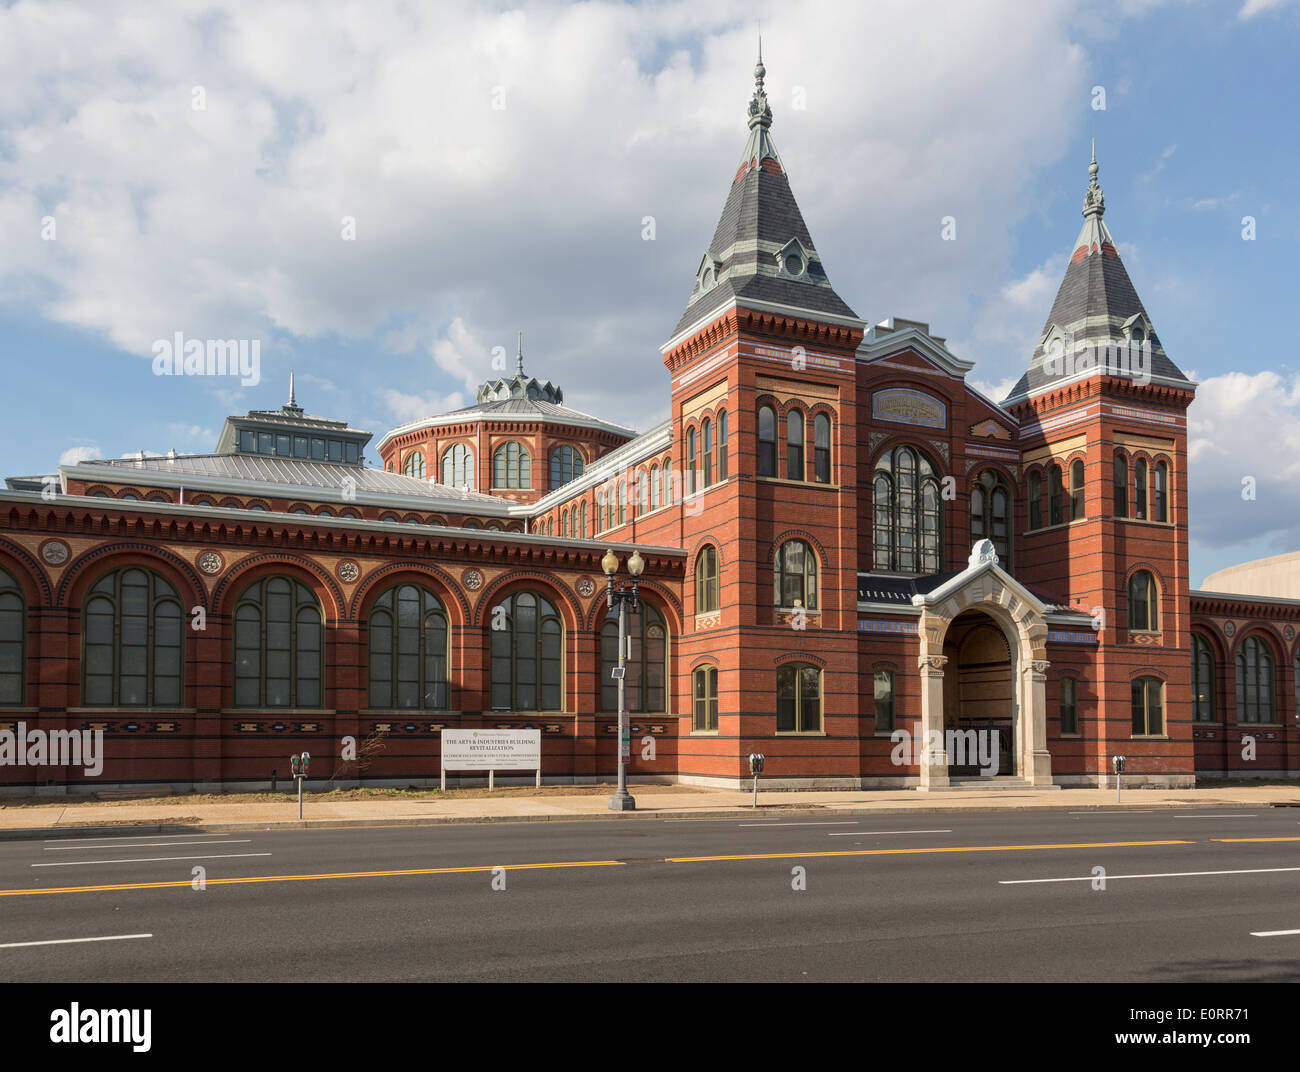 Arts and Industries building of Smithsonian Institution in Washington DC, USA - Stock Image